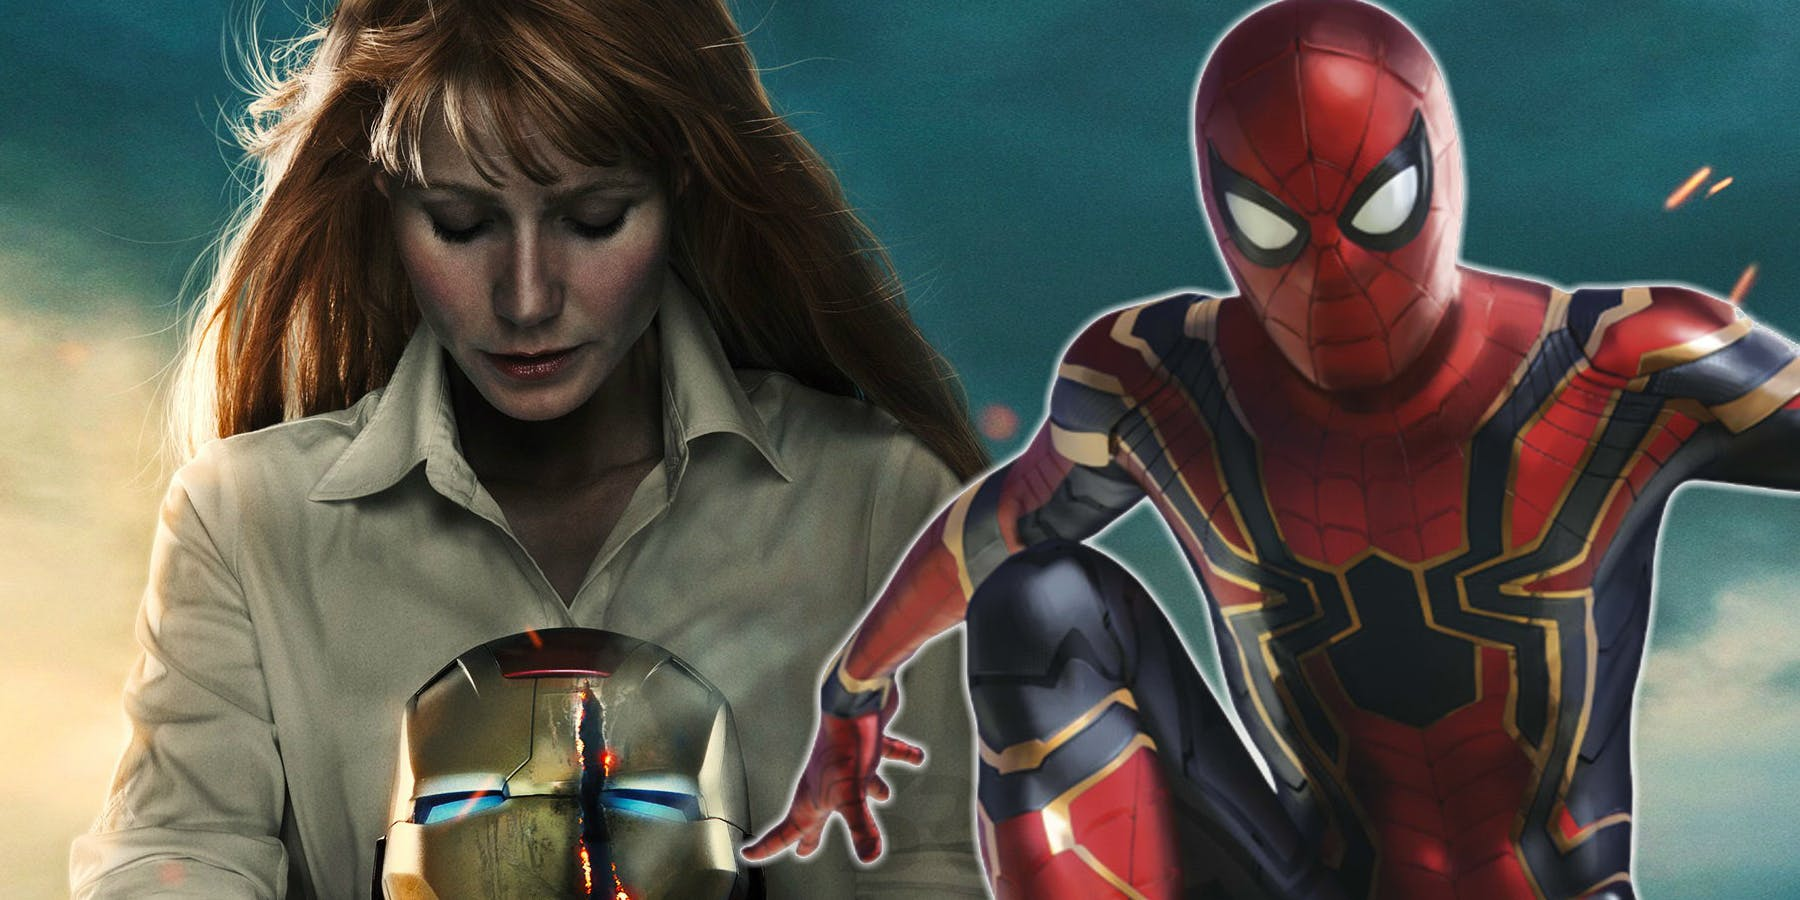 gwyneth paltrow's pepper potts may return in spider-man: far from